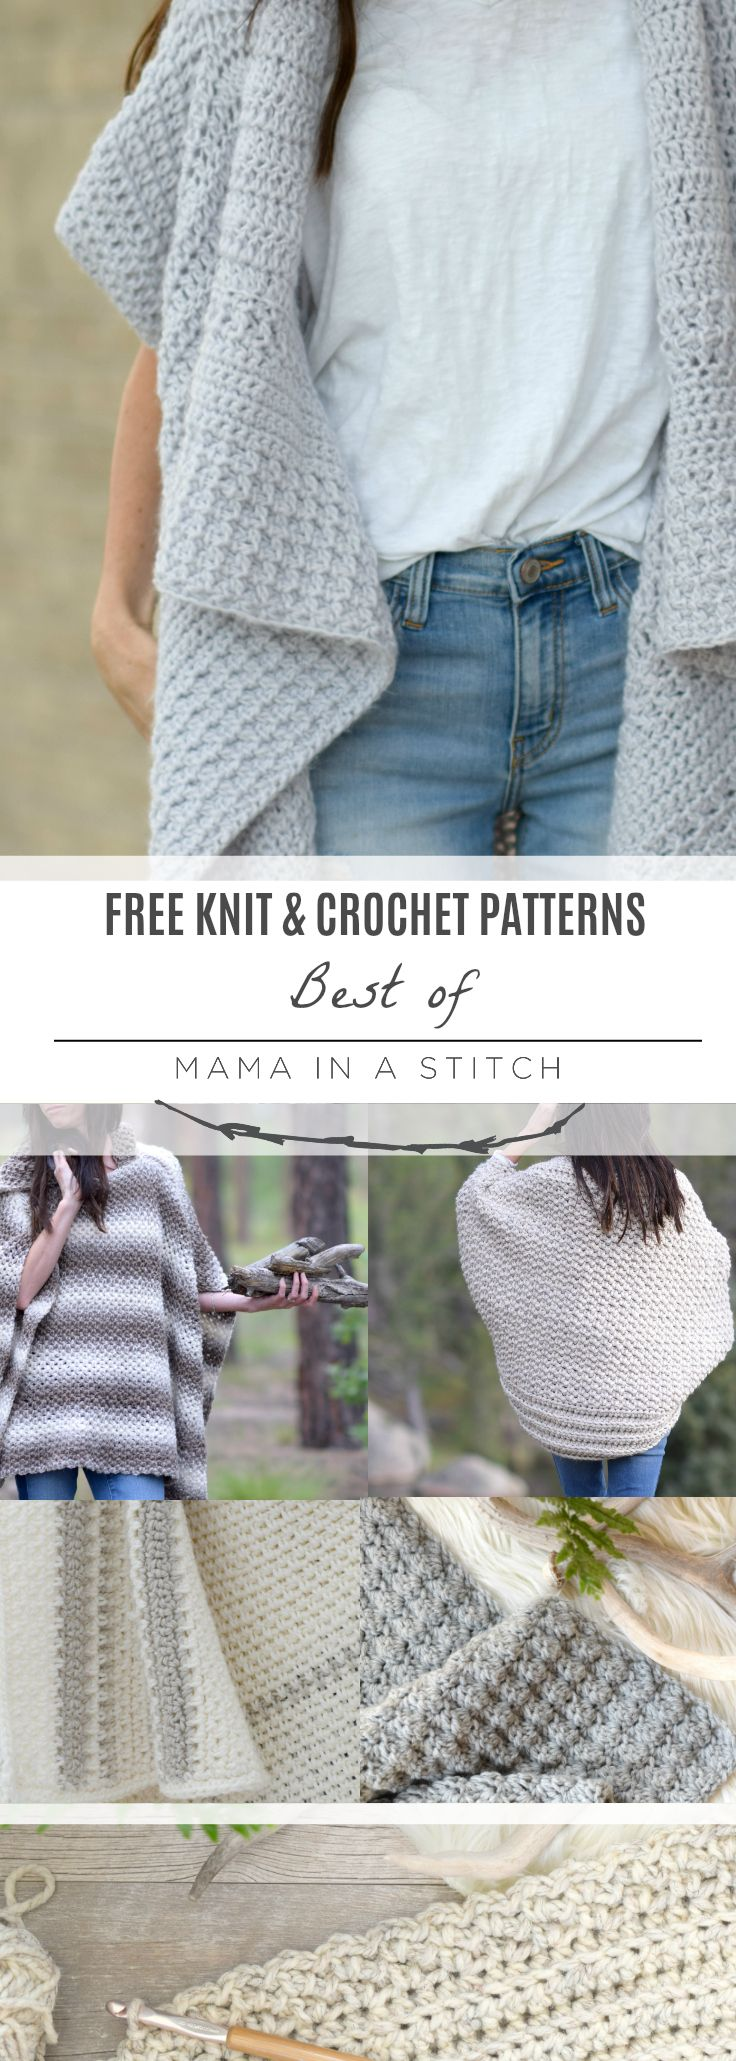 Top Knit and Crochet Patterns via @MamaInAStitch These are the favorite free knit and crochet patterns from Mama In A Stitch this year! It links to the patterns for crocheted sweaters, crocheted blankets and more!